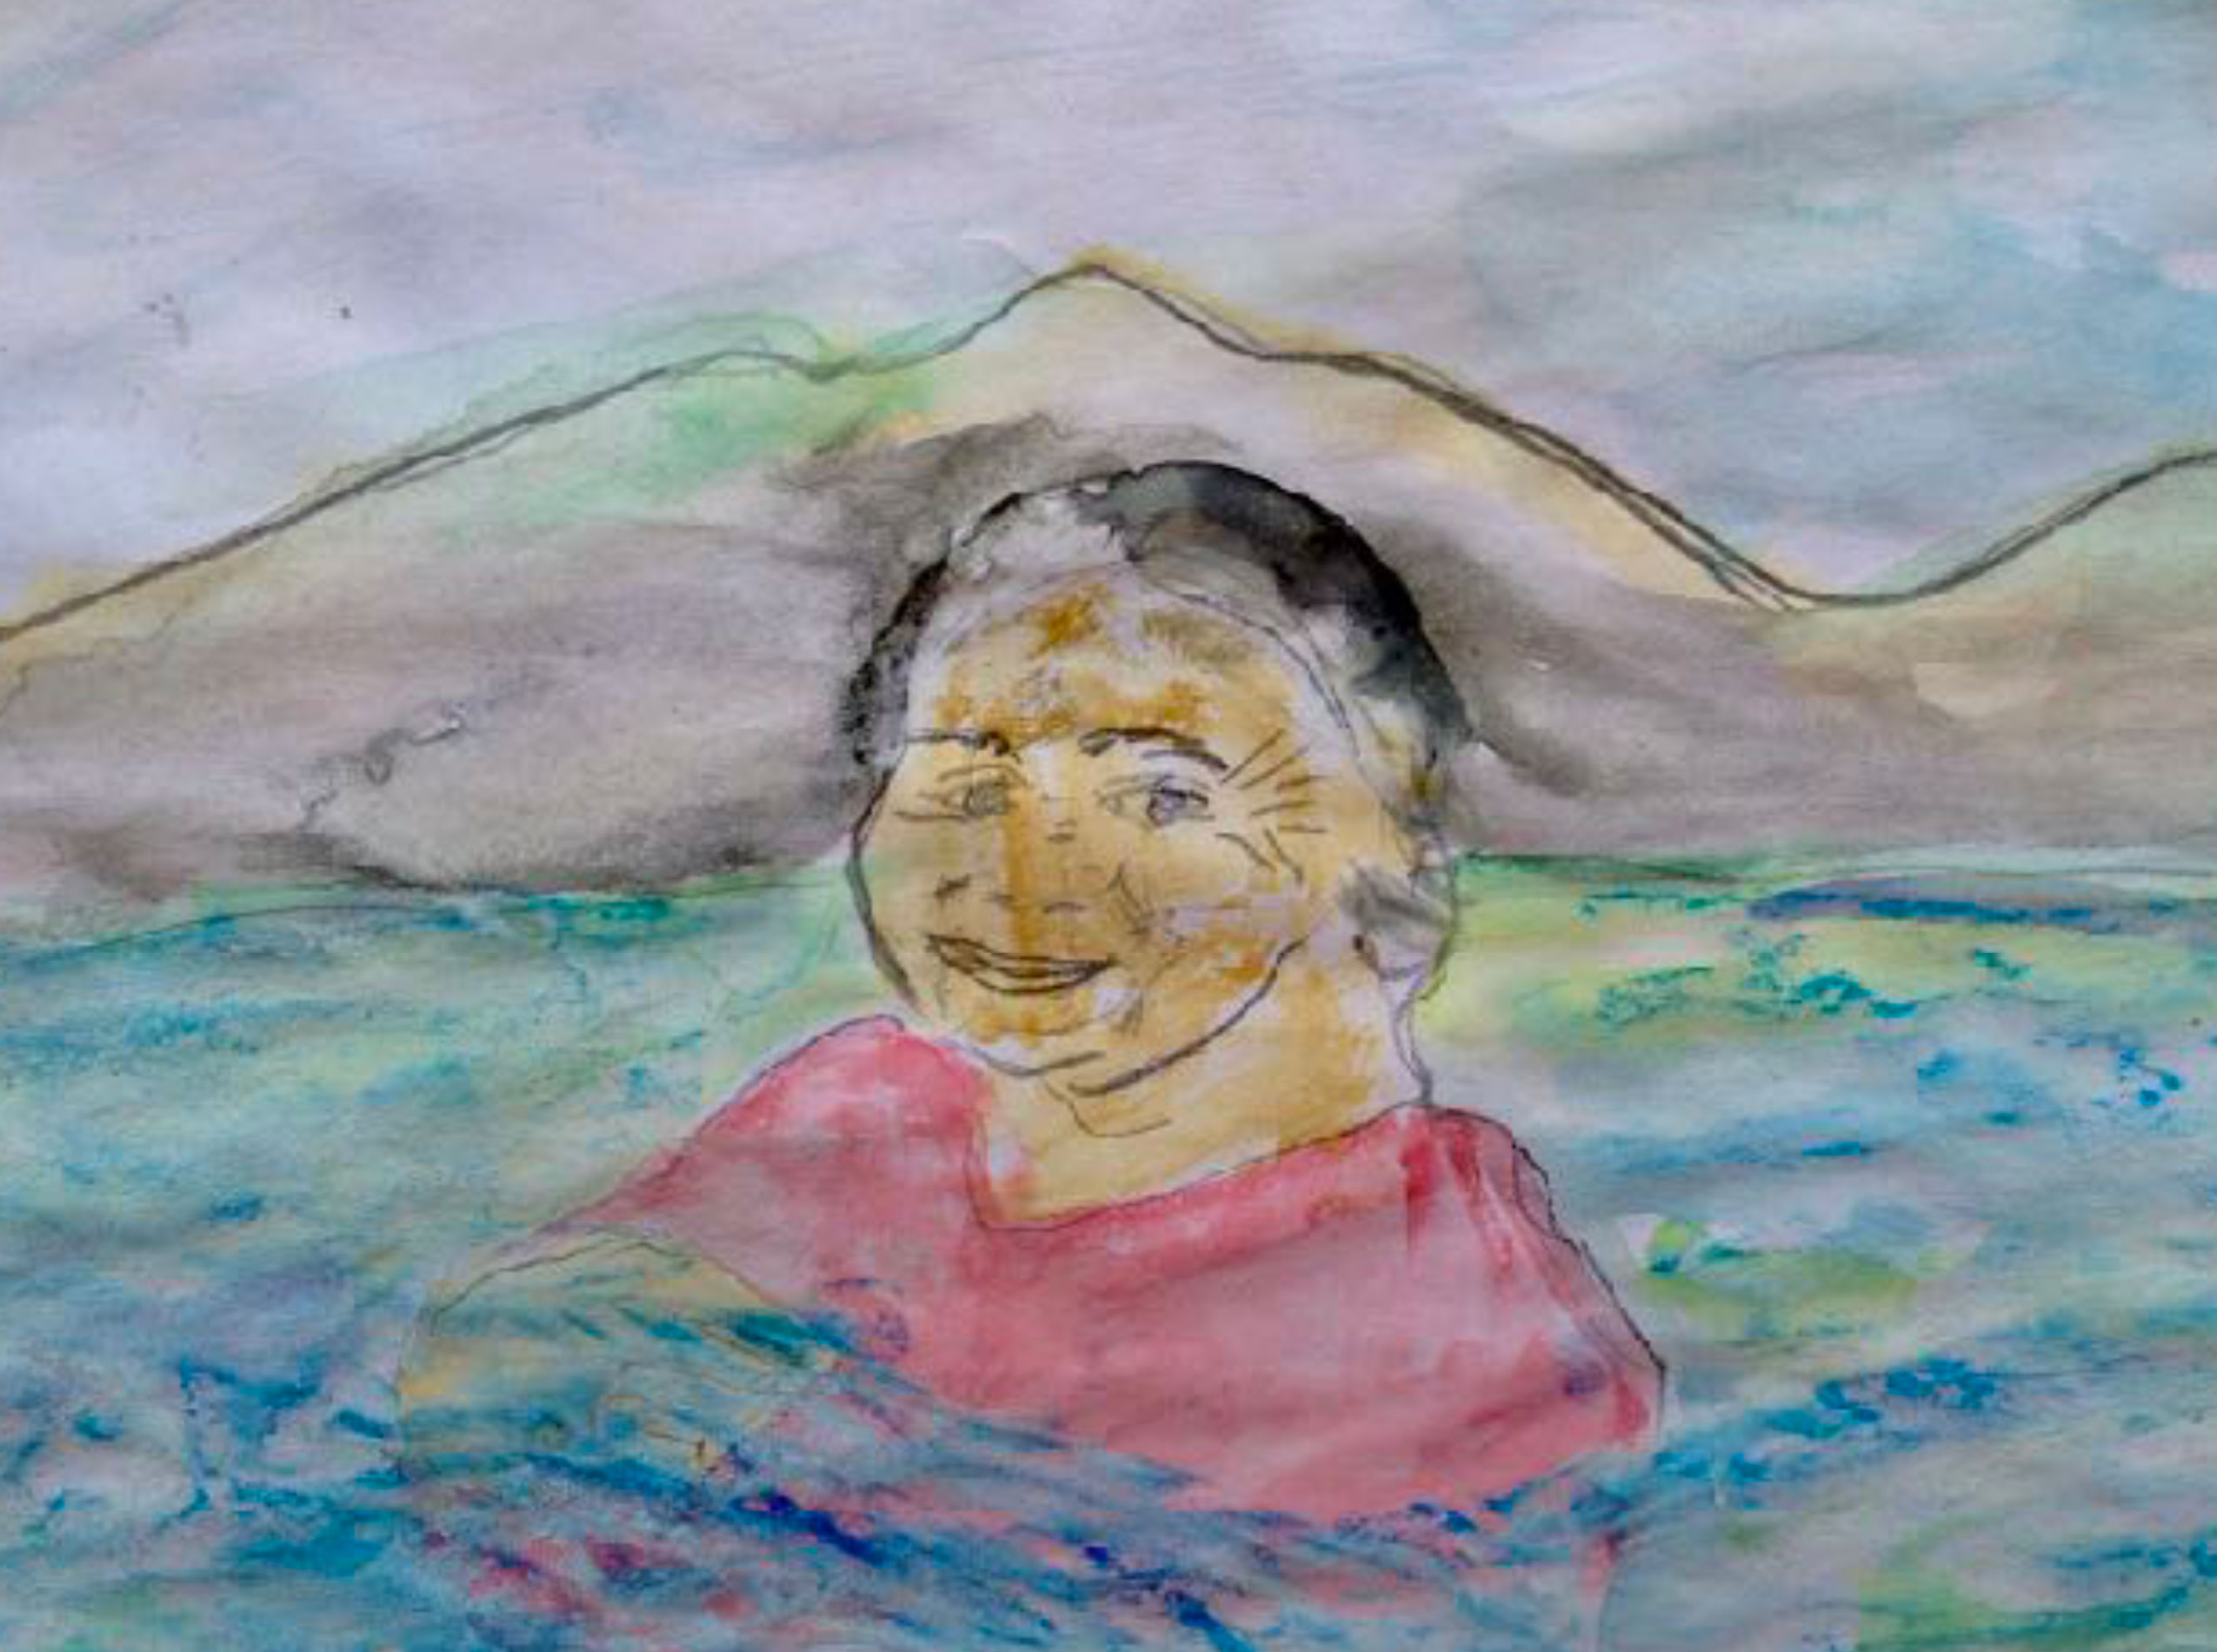 Watercolour of Nuestra Señora del Lago Chapala, by Susa Silvermarie